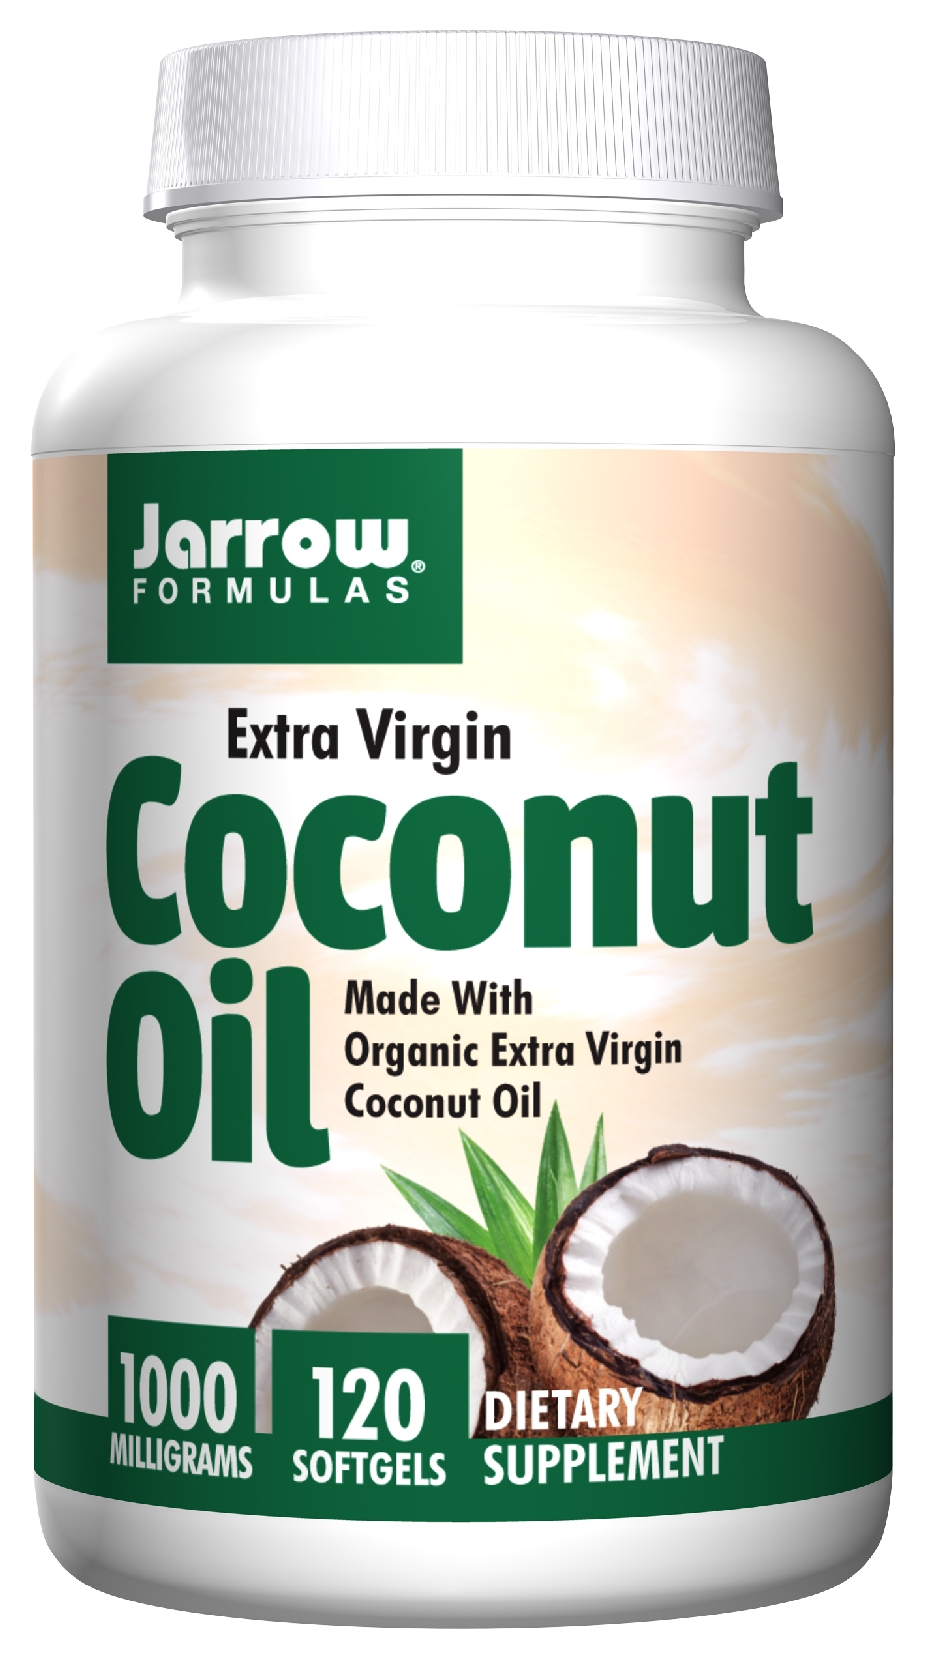 Extra Virgin Coconut Oil 1000 mg 120 sgels by Jarrow Formulas